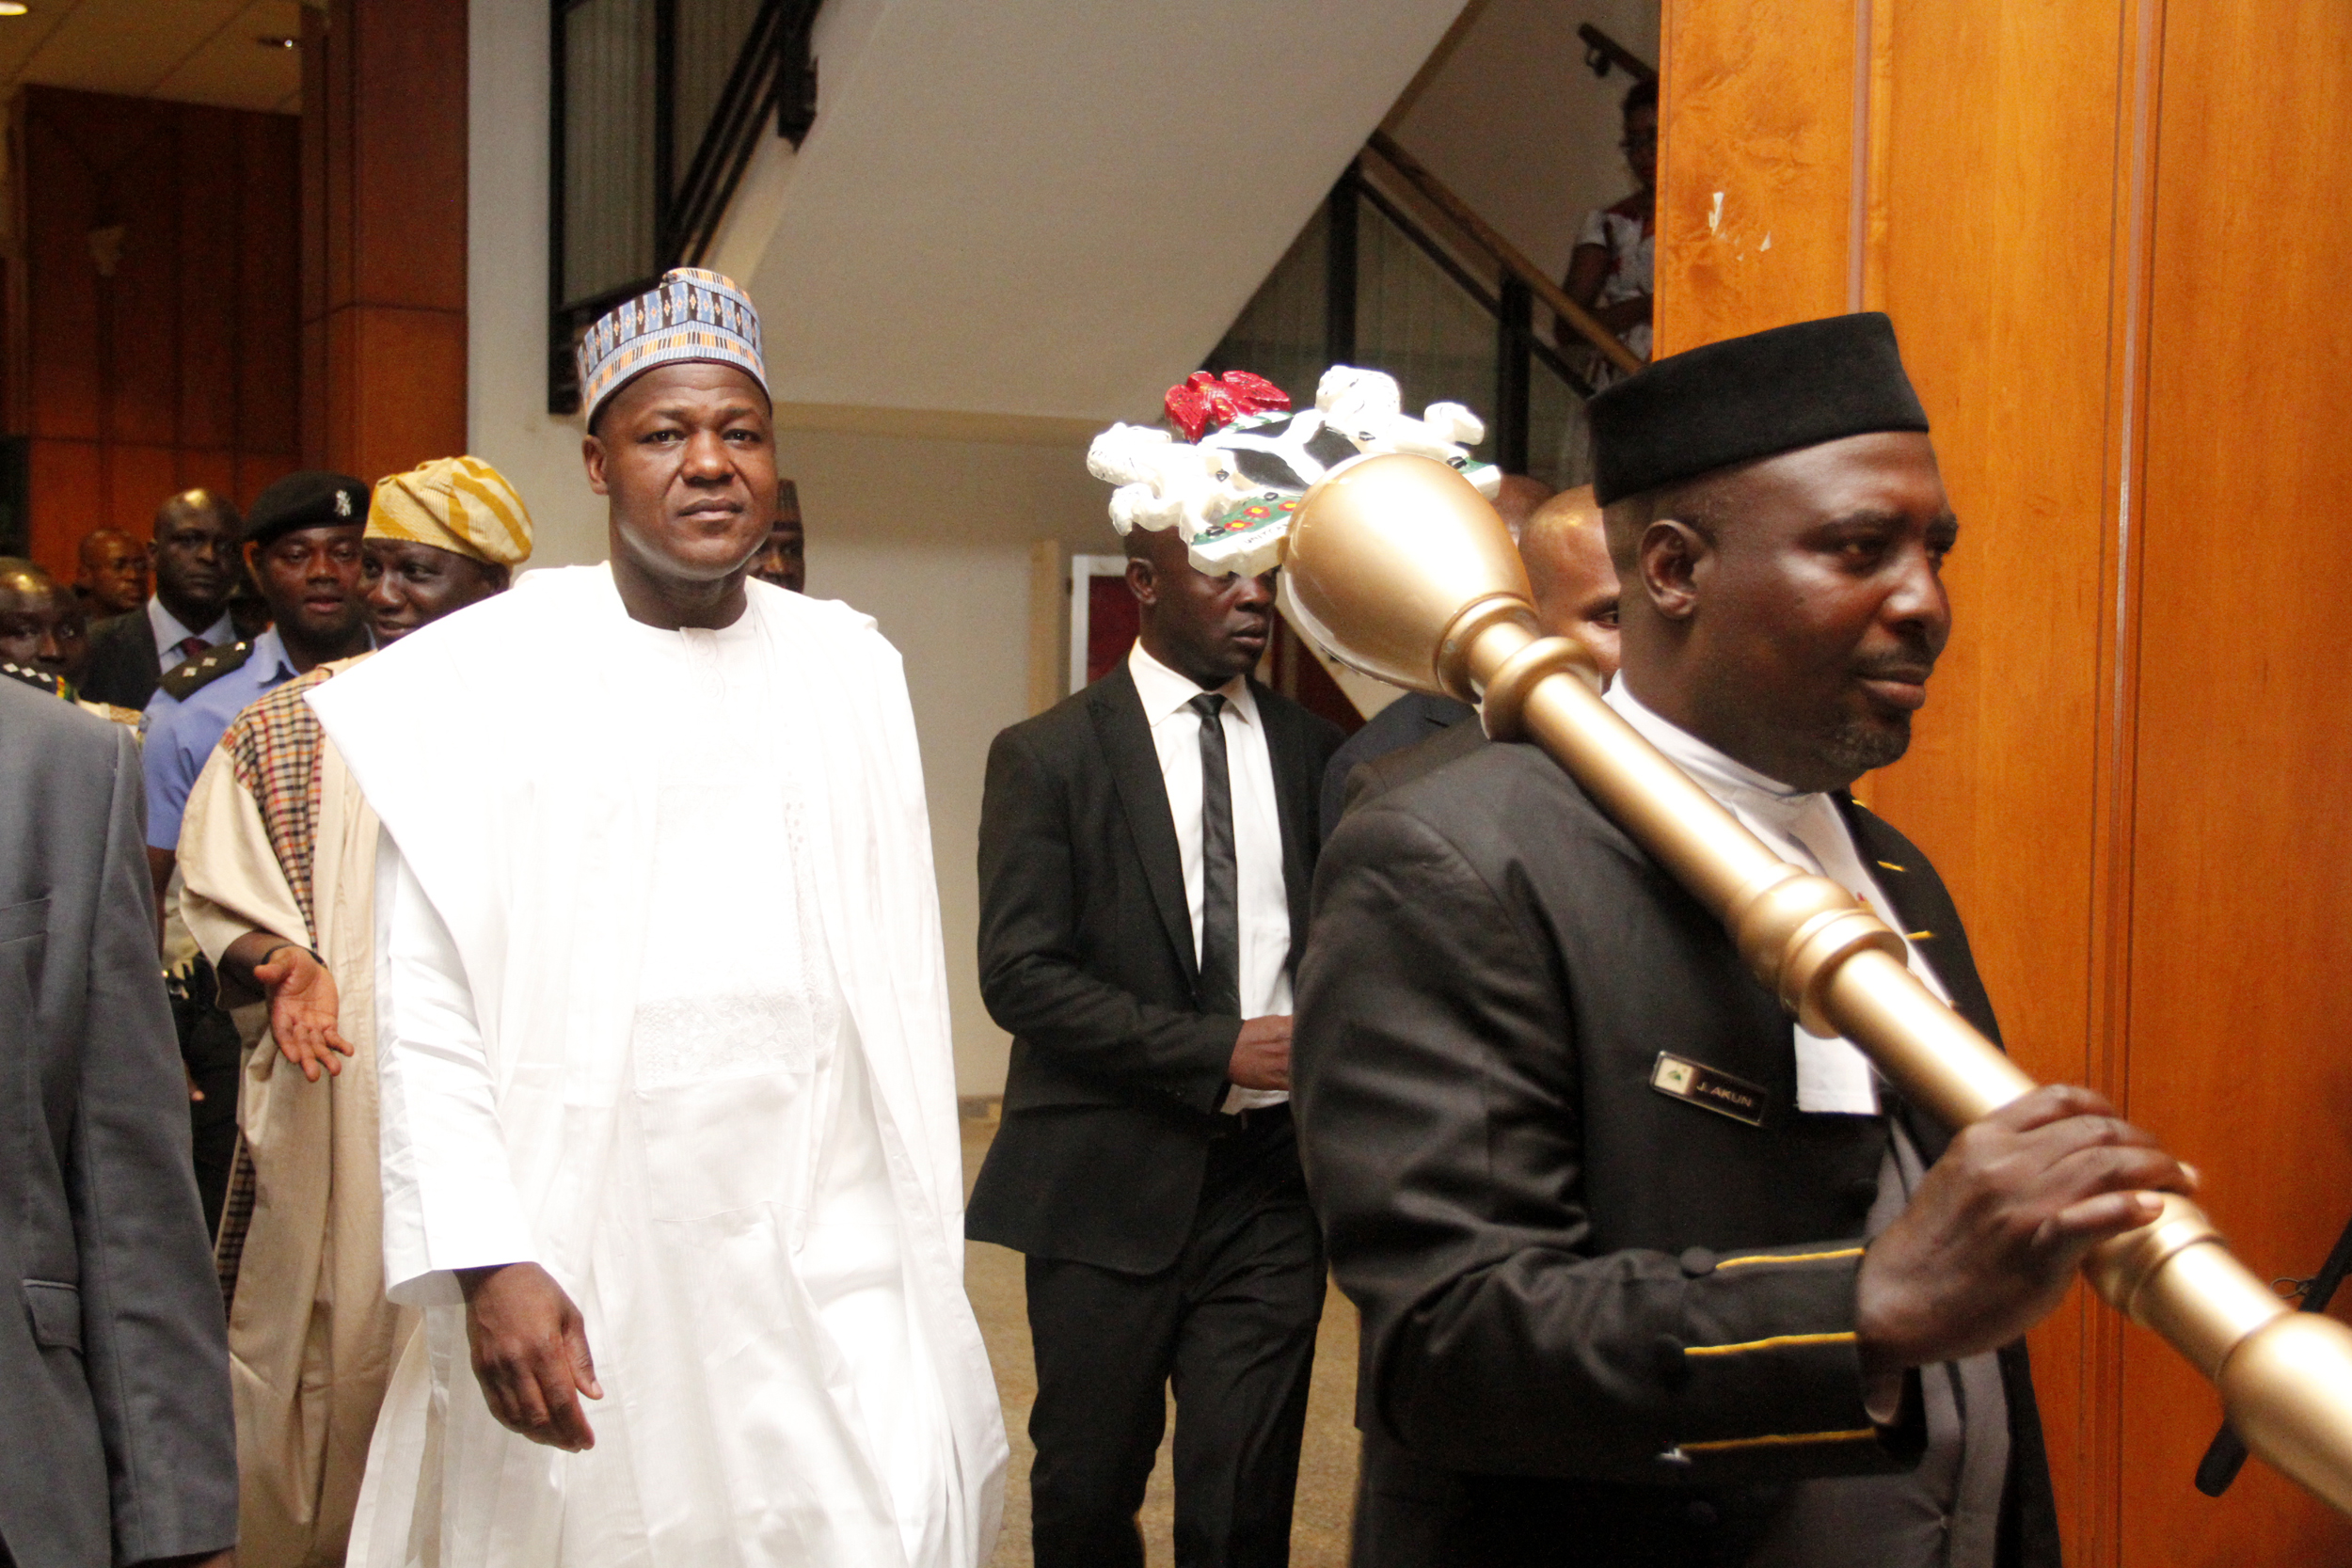 Speaker,House of Representatives,Honourable Yakubu Dogara coming out of the Chamber after a Peaceful  resolution during the Plenary session in the National assembly today 28/07/15.Photo Ladidi Lucy Elukpo.